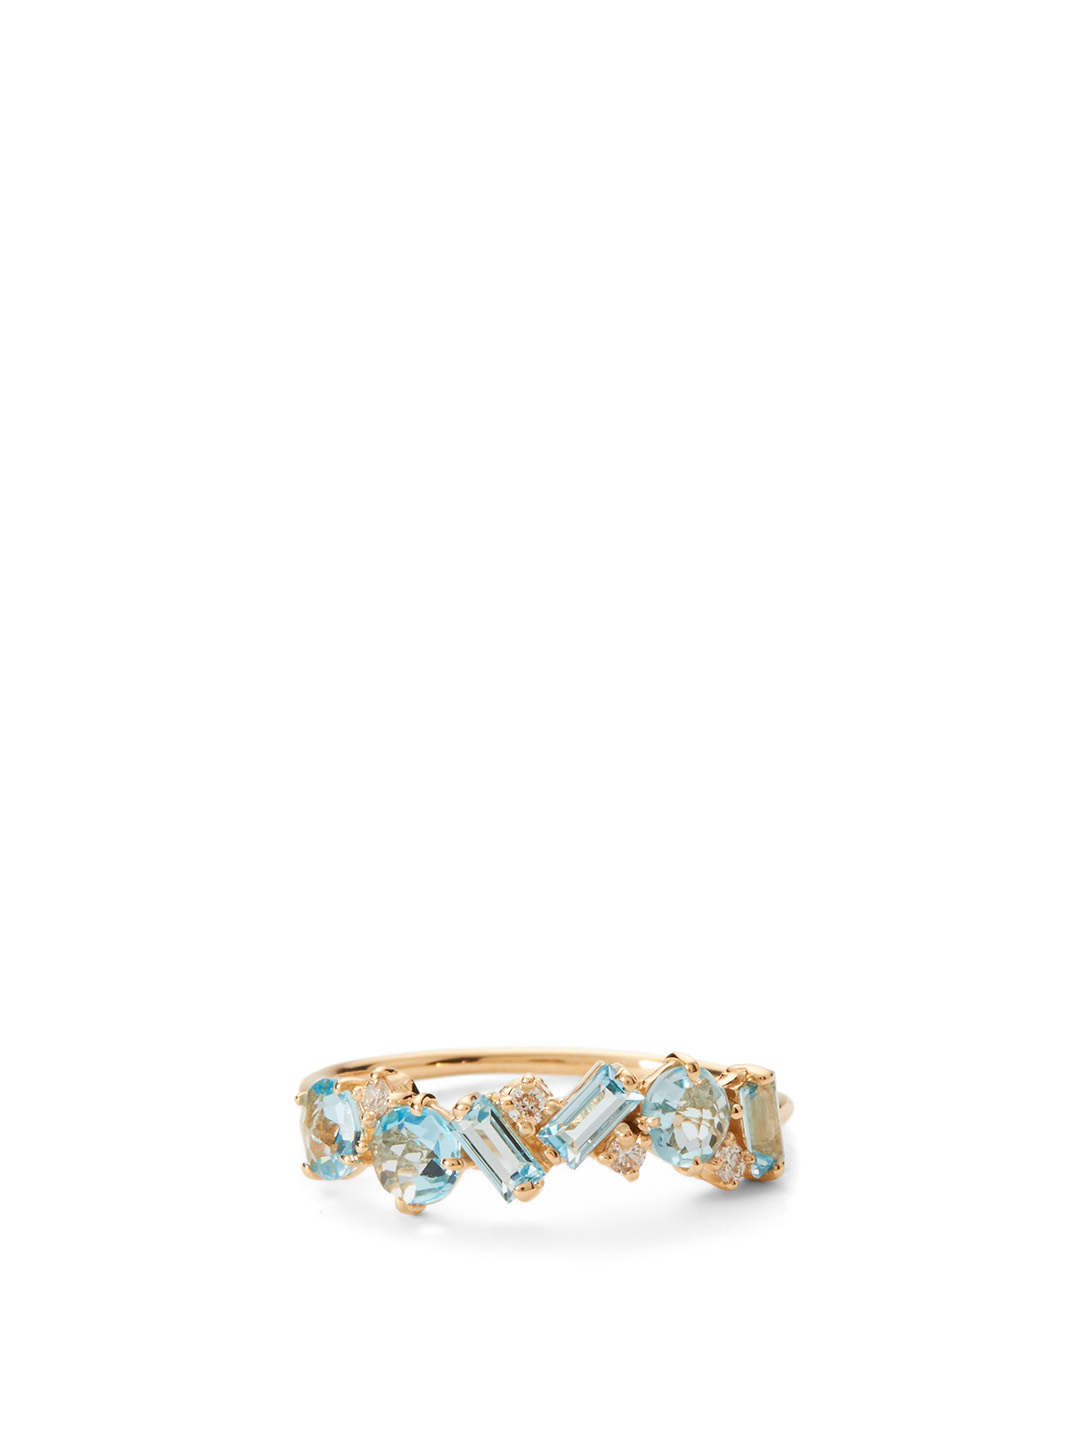 14 K Gold Mixed Amalfi Ring With Blue Topaz And Diamonds by Holt Renfrew